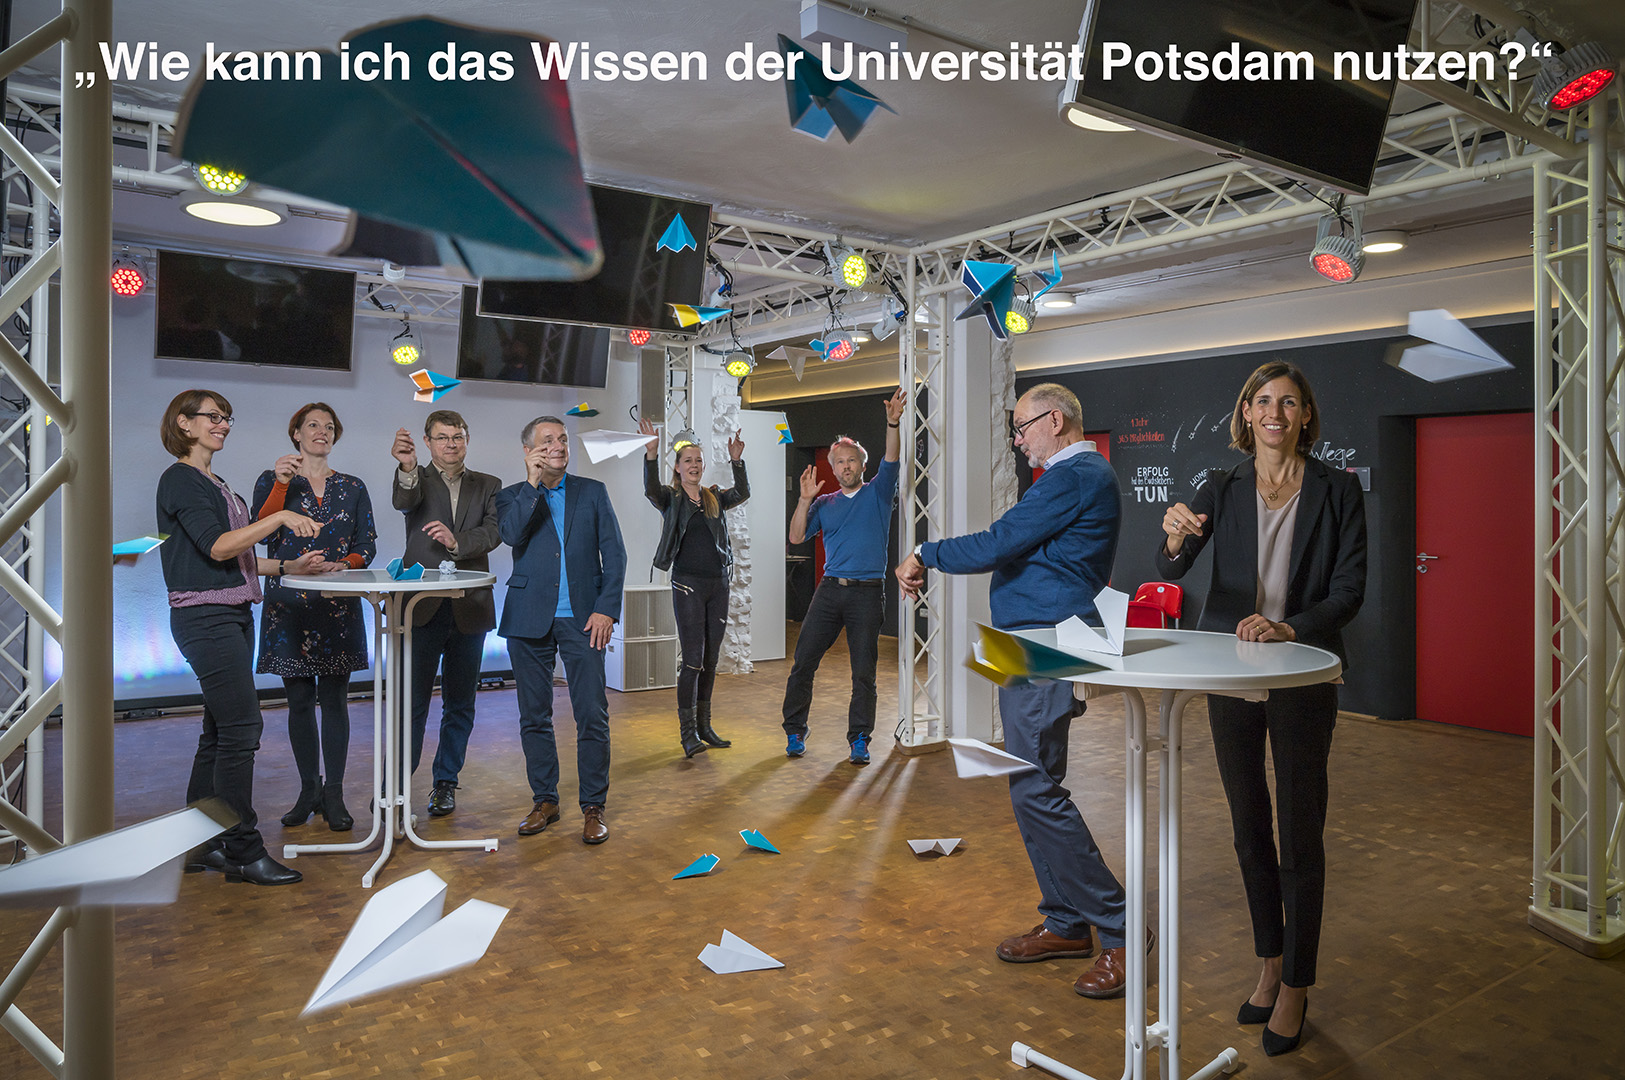 Universität Potsdam (UP), Innovative Hochschule